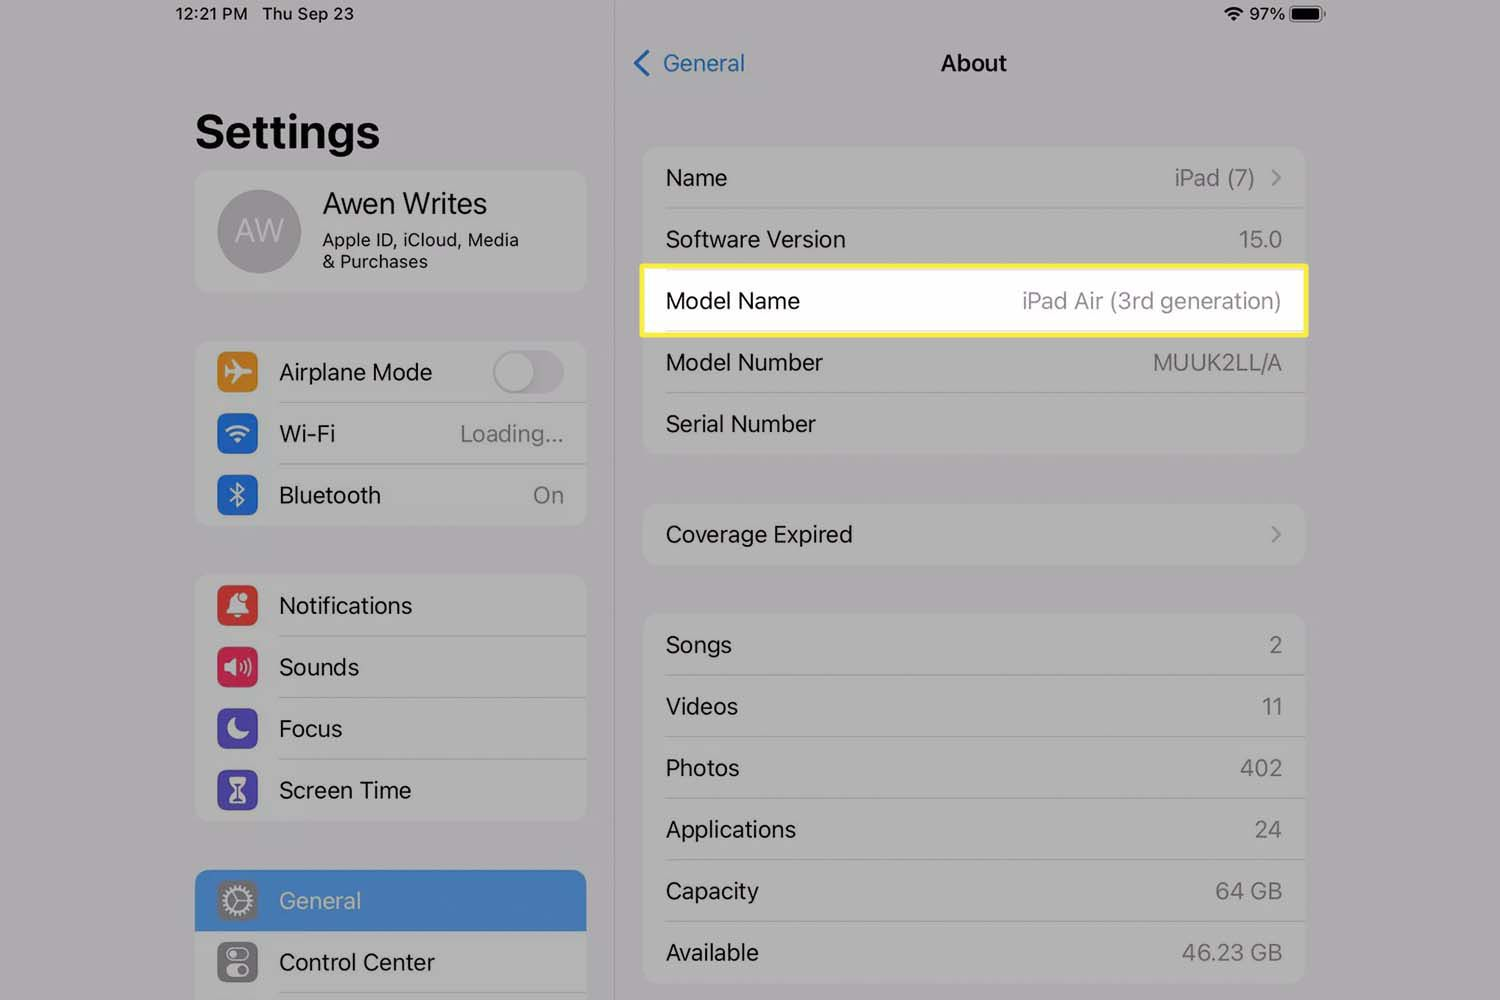 Model Name highlighted from iPad settings.